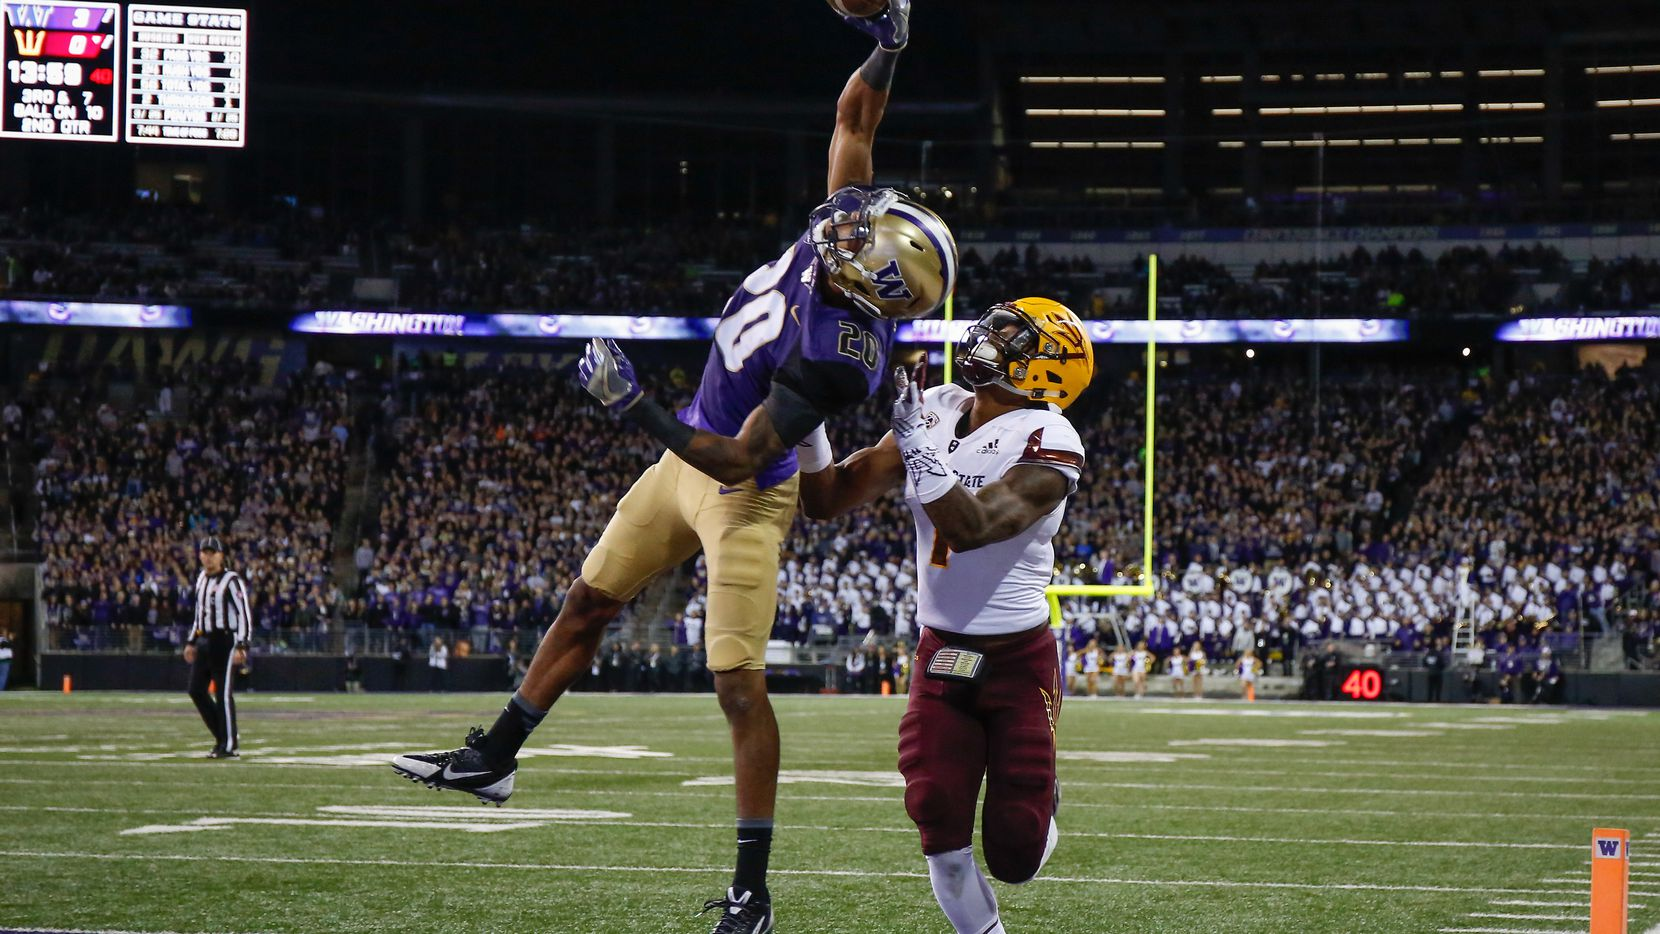 SEATTLE, WA - NOVEMBER 19:  Defensive back Kevin King (#20) of the Washington Huskies makes a one-handed interception in the end zone over wide receiver N'Keal Harry (#1) of the Arizona State Sun Devils at Husky Stadium in Seattle, Washington.  (Photo by Otto Greule Jr/Getty Images)